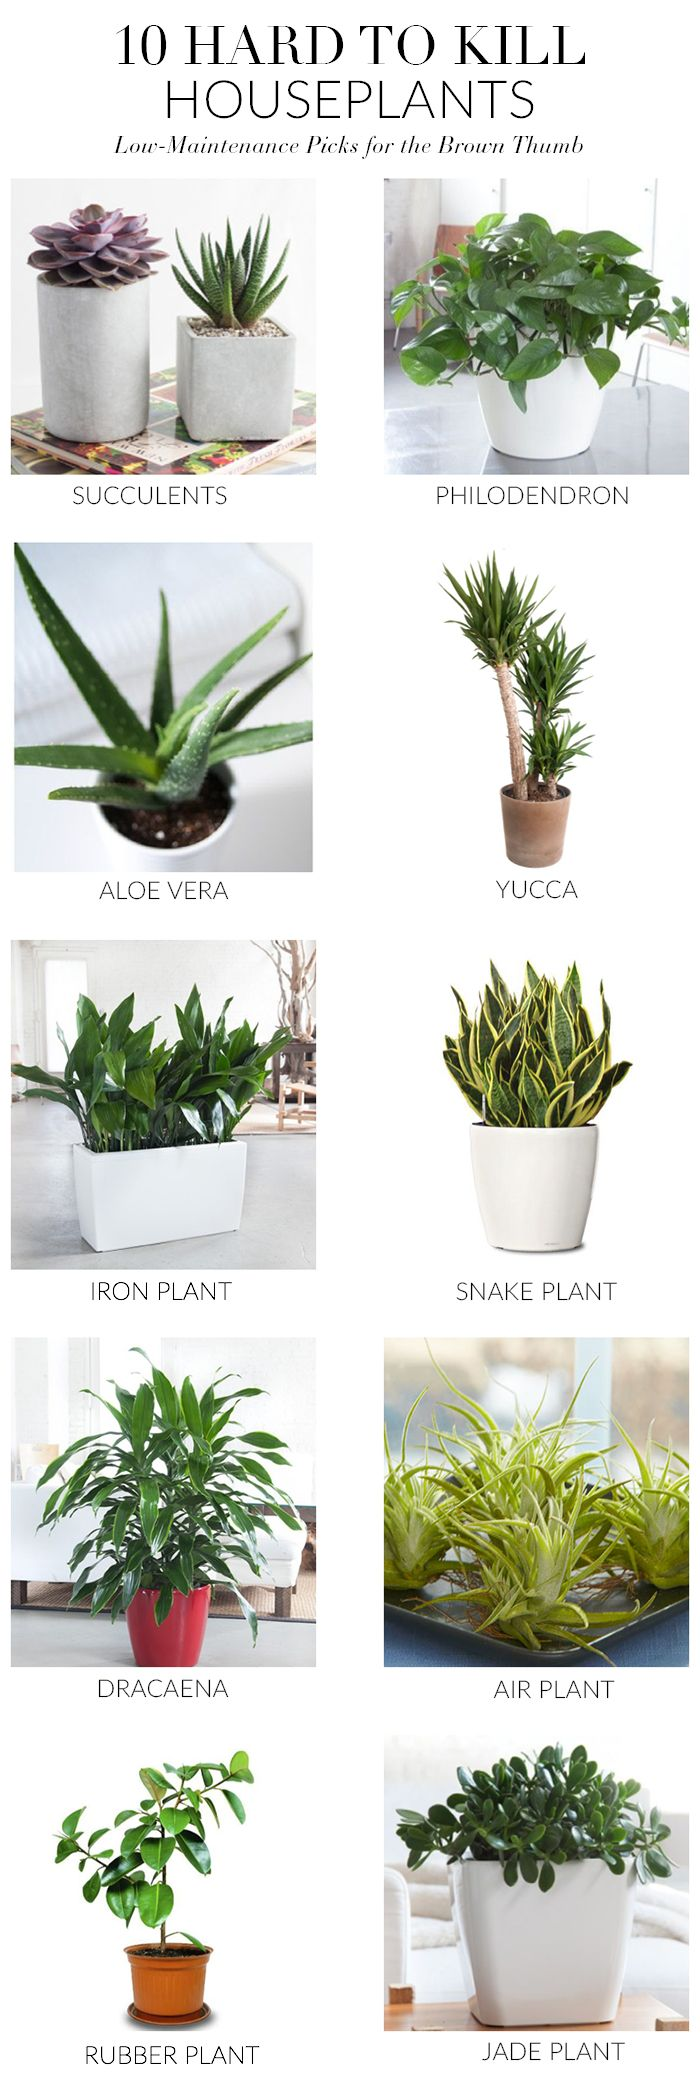 Jade plants need full sun in order to grow properly and need to be drained well…